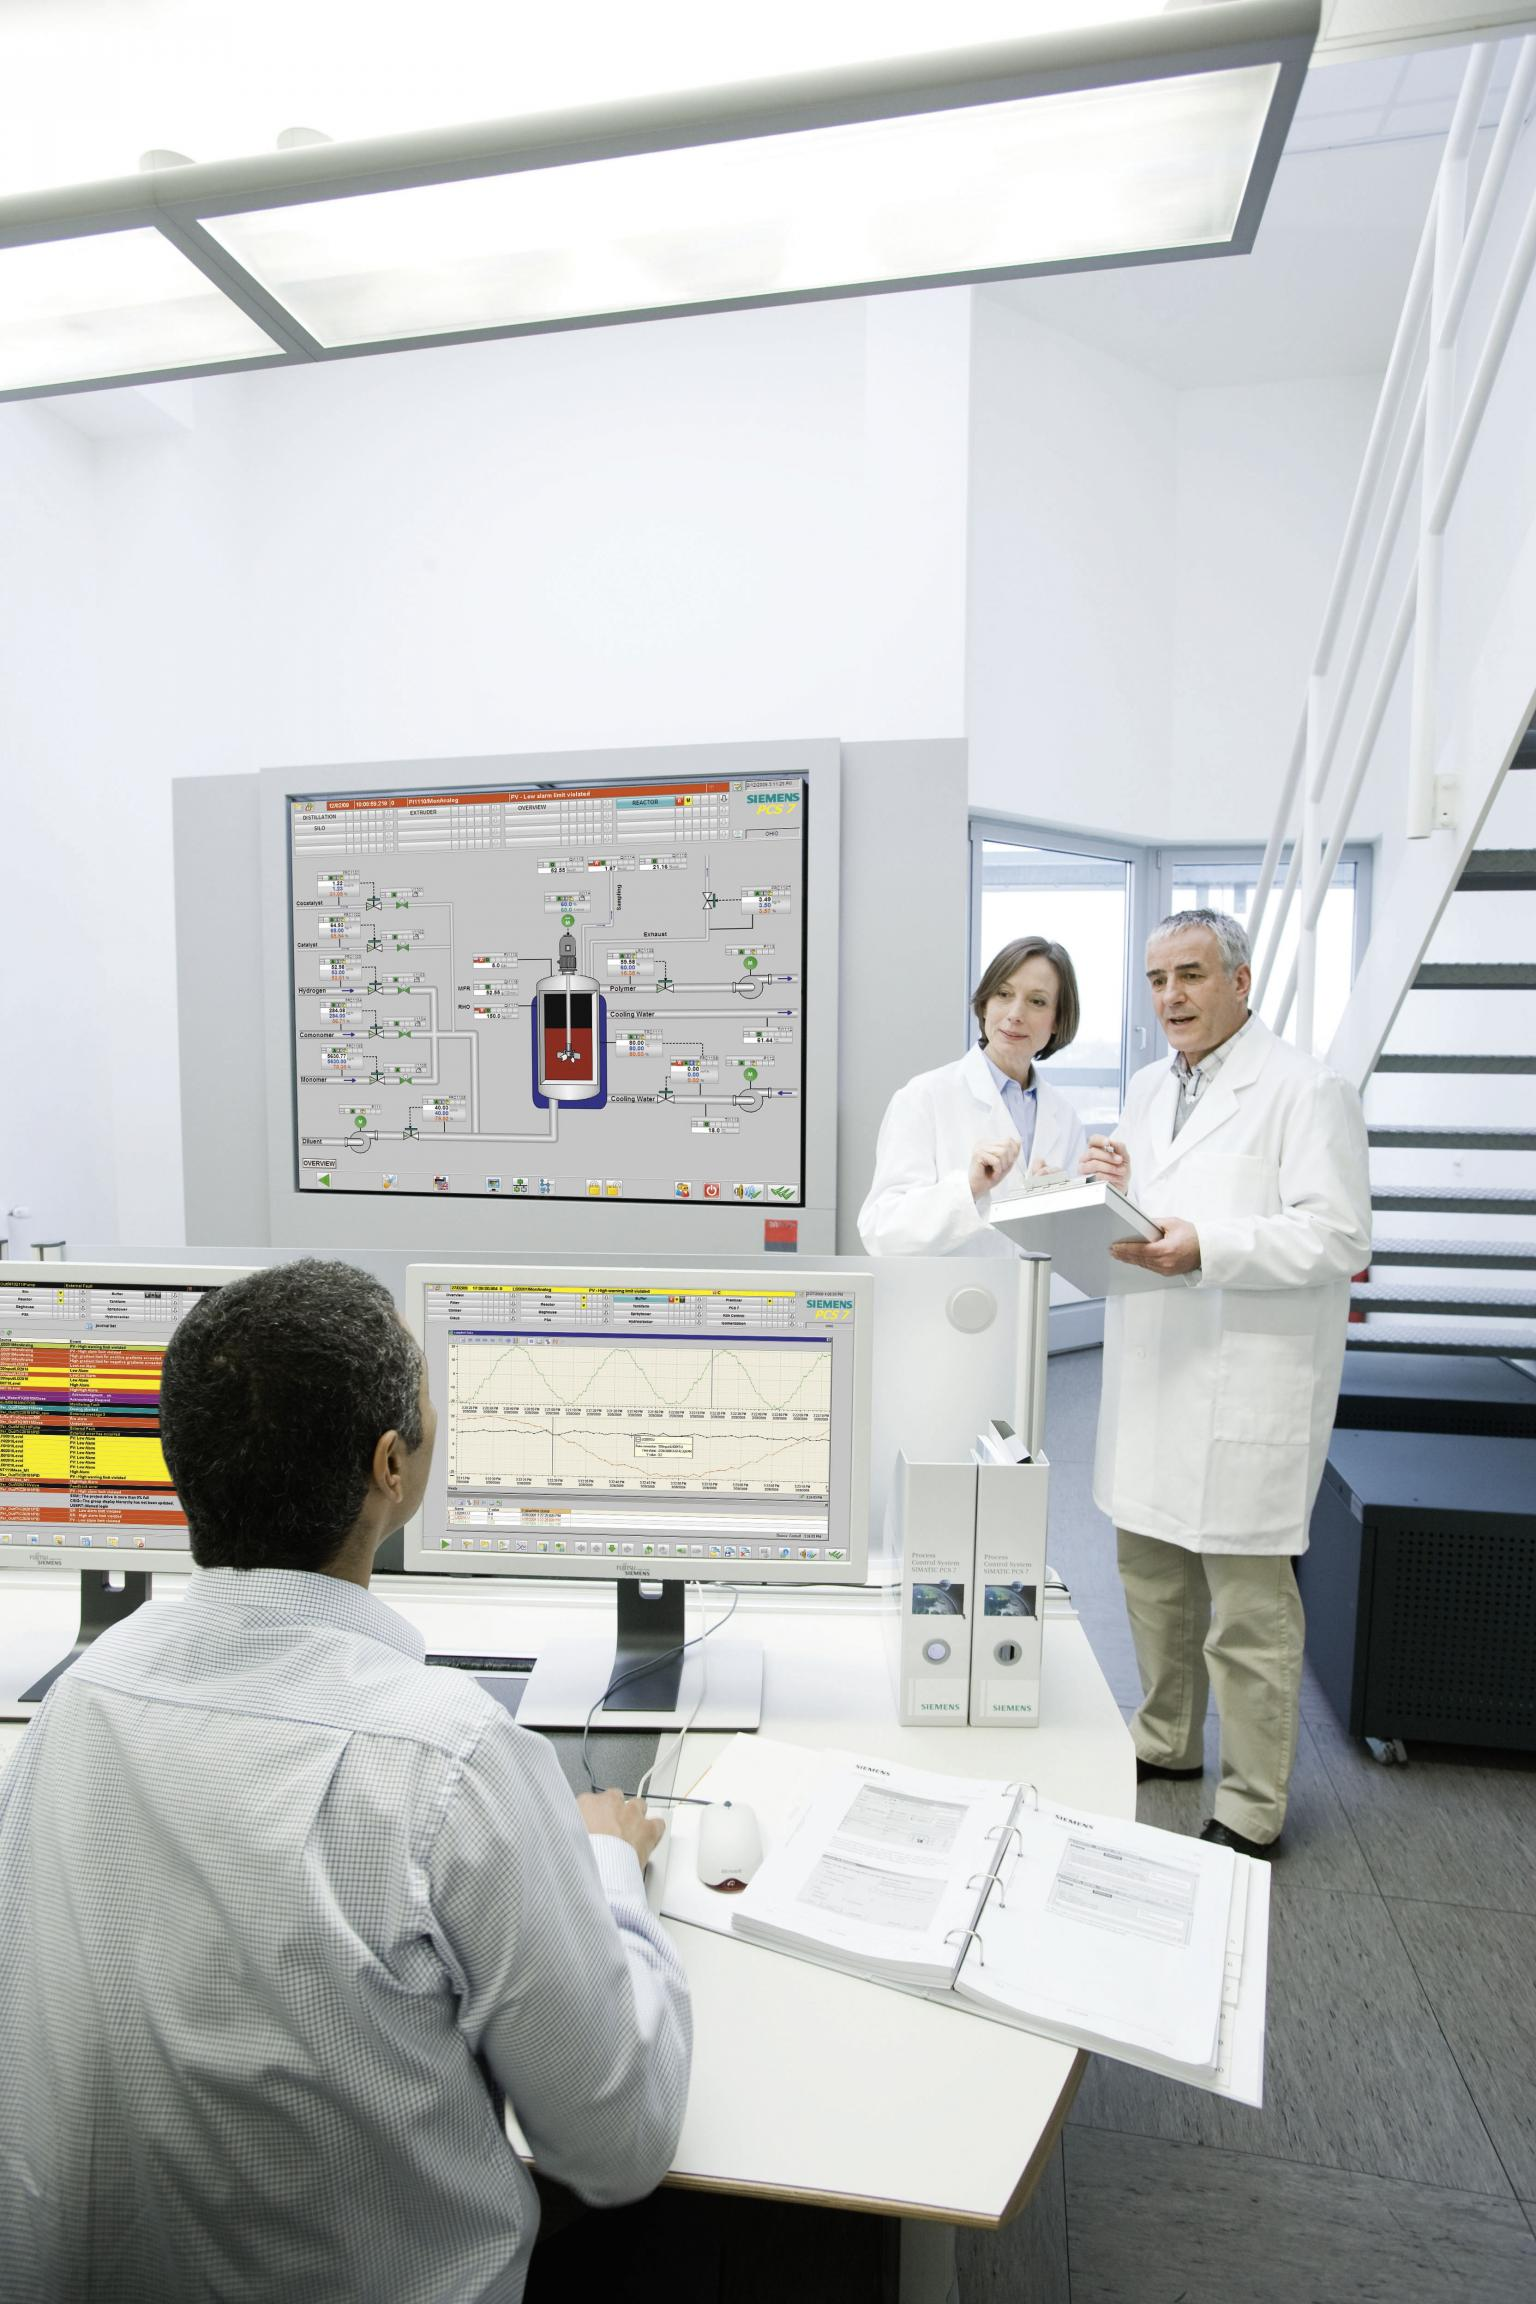 Siemens process control software is used in a variety of plants worldwide, from chemical to pharmaceutical